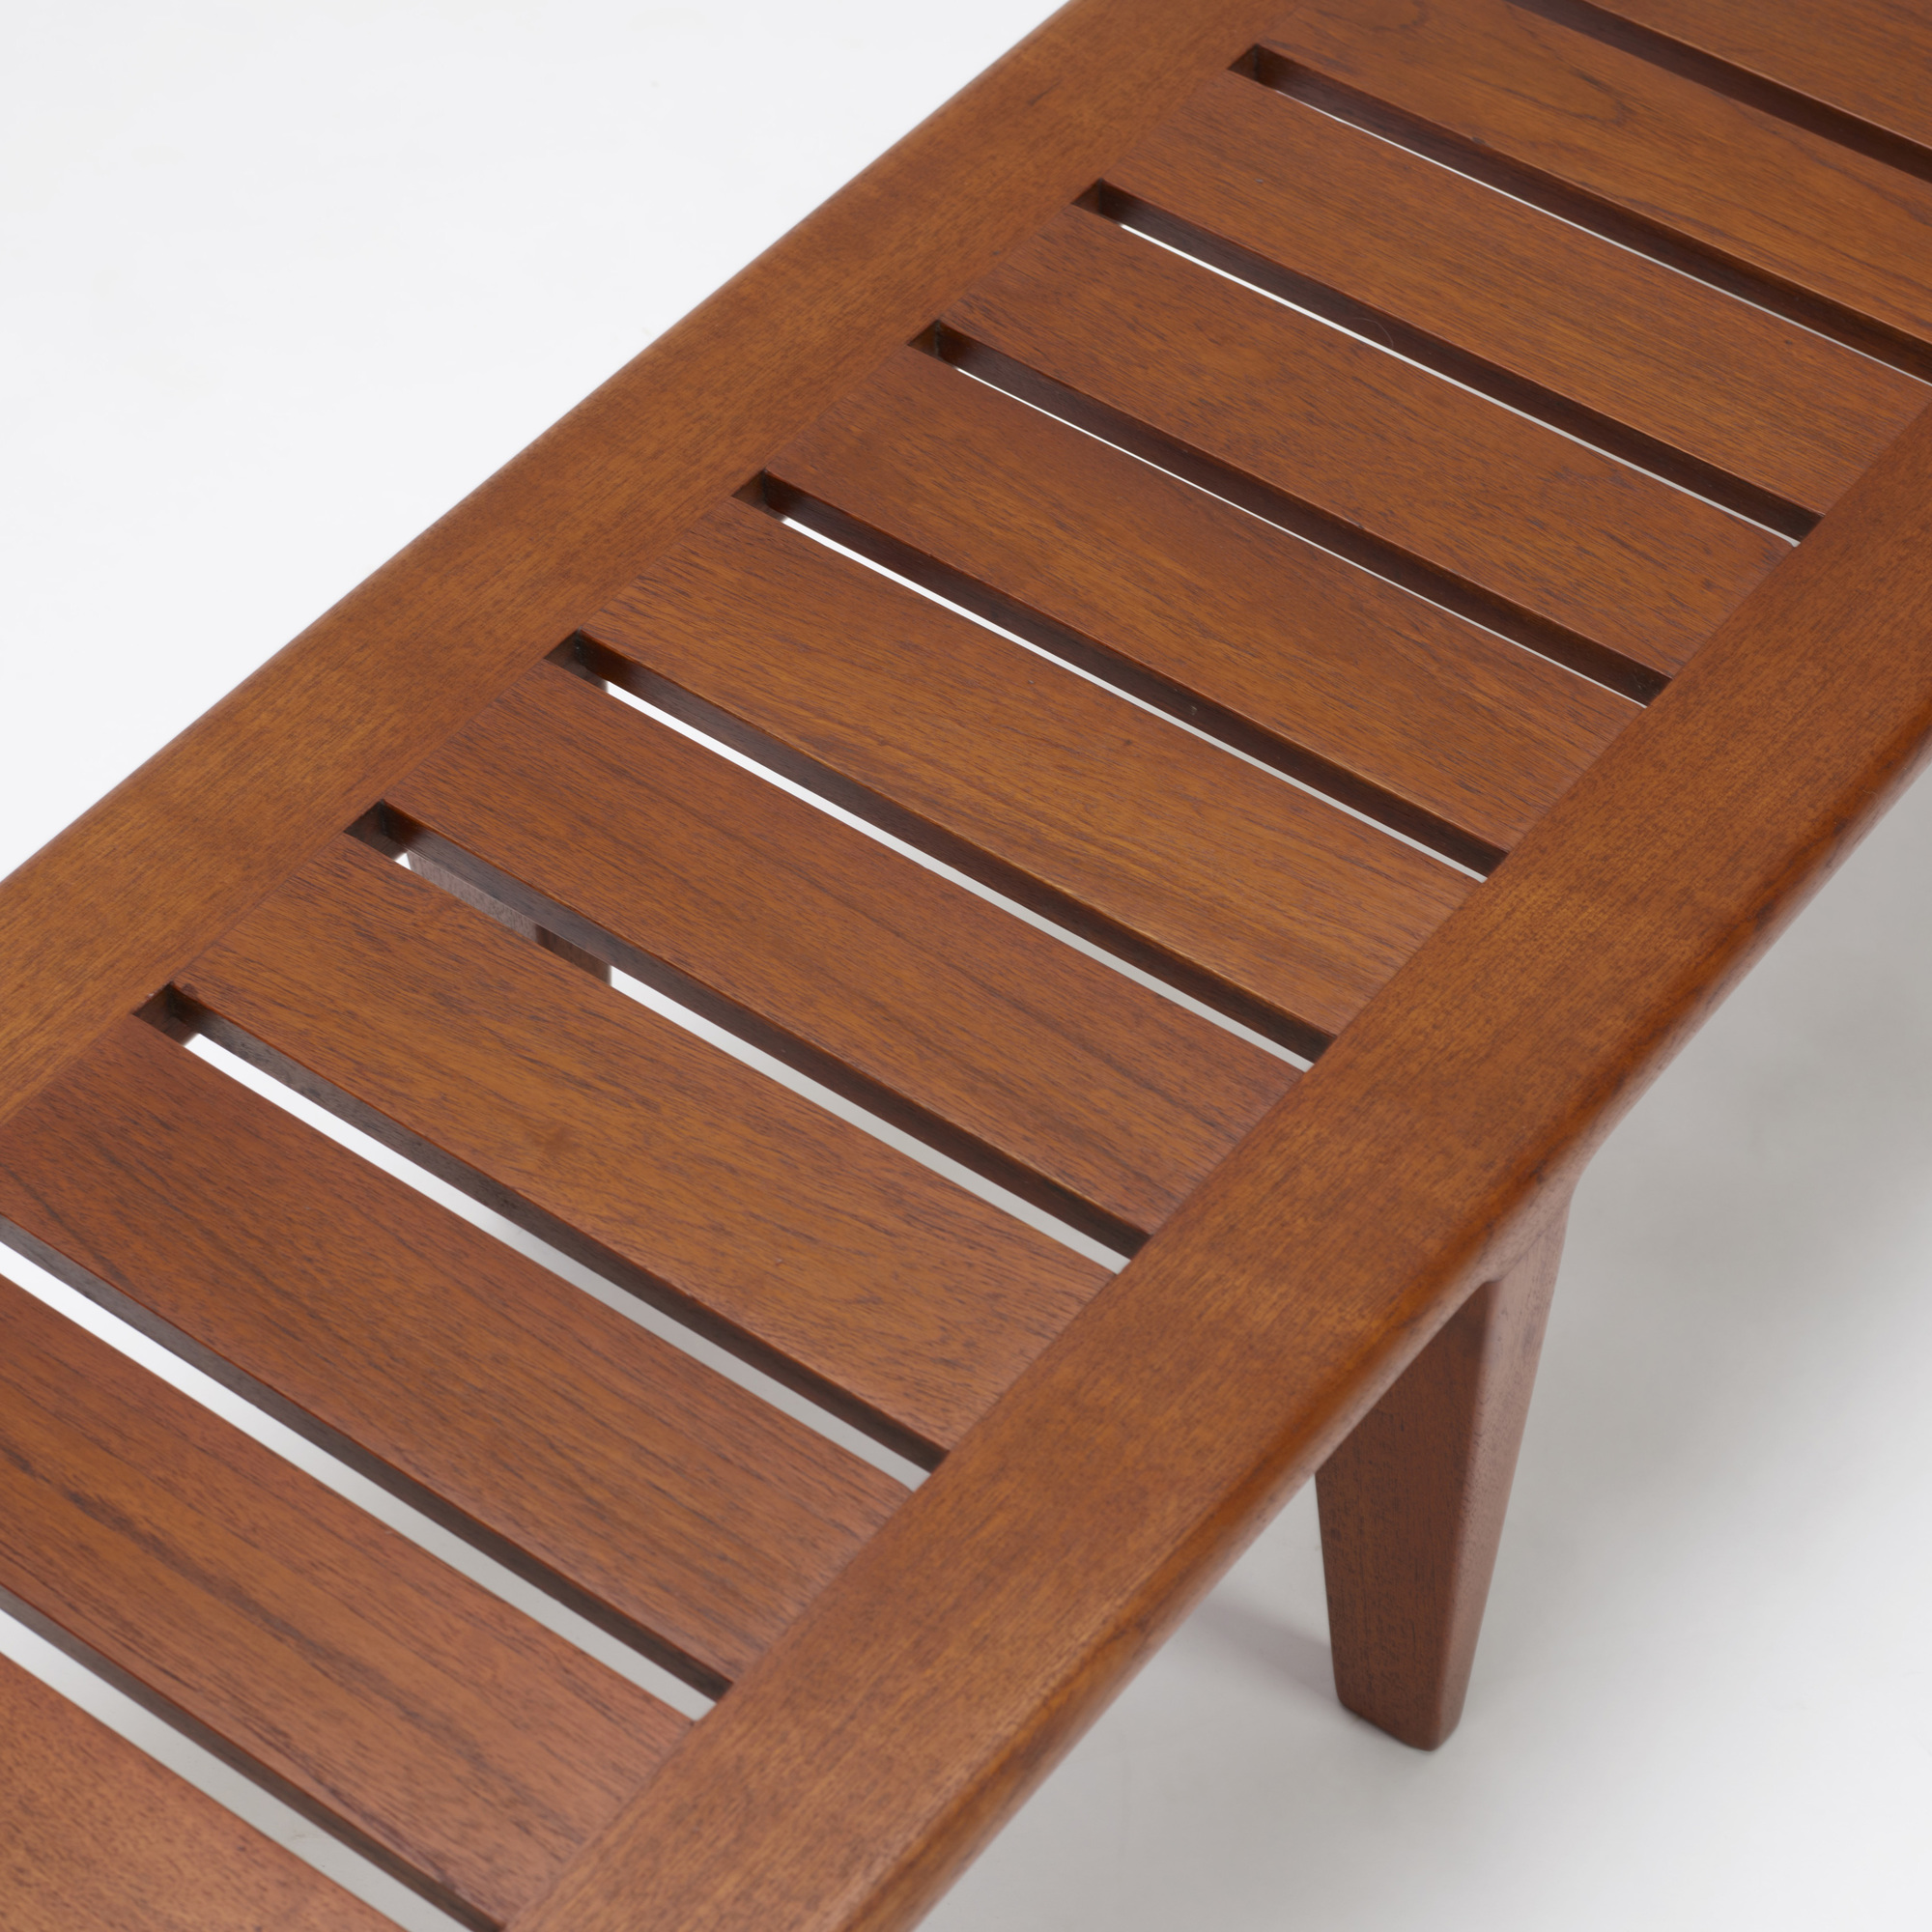 371: Hans J. Wegner / bench (3 of 3)